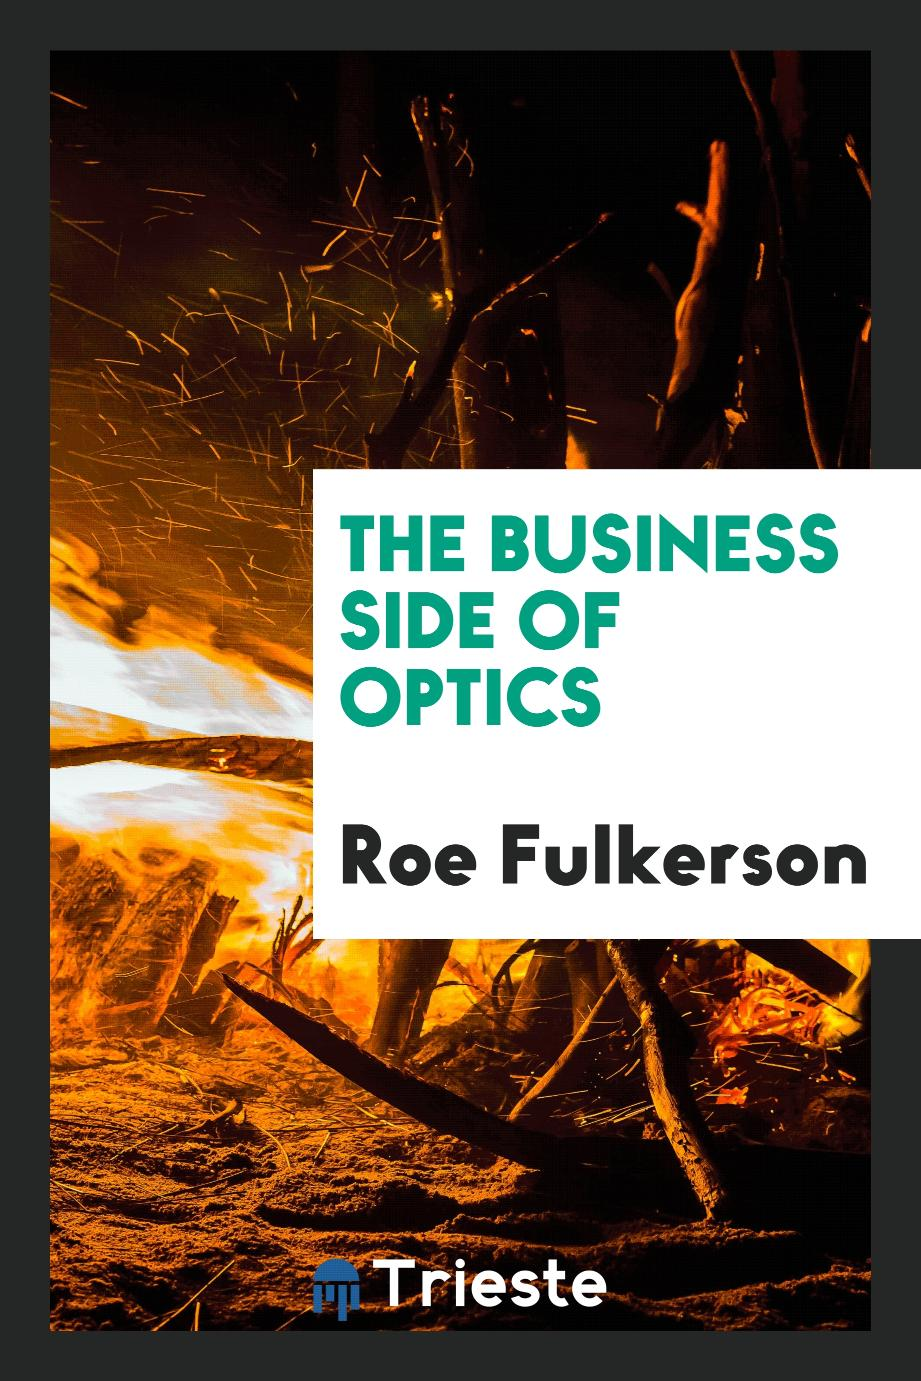 The Business Side of Optics